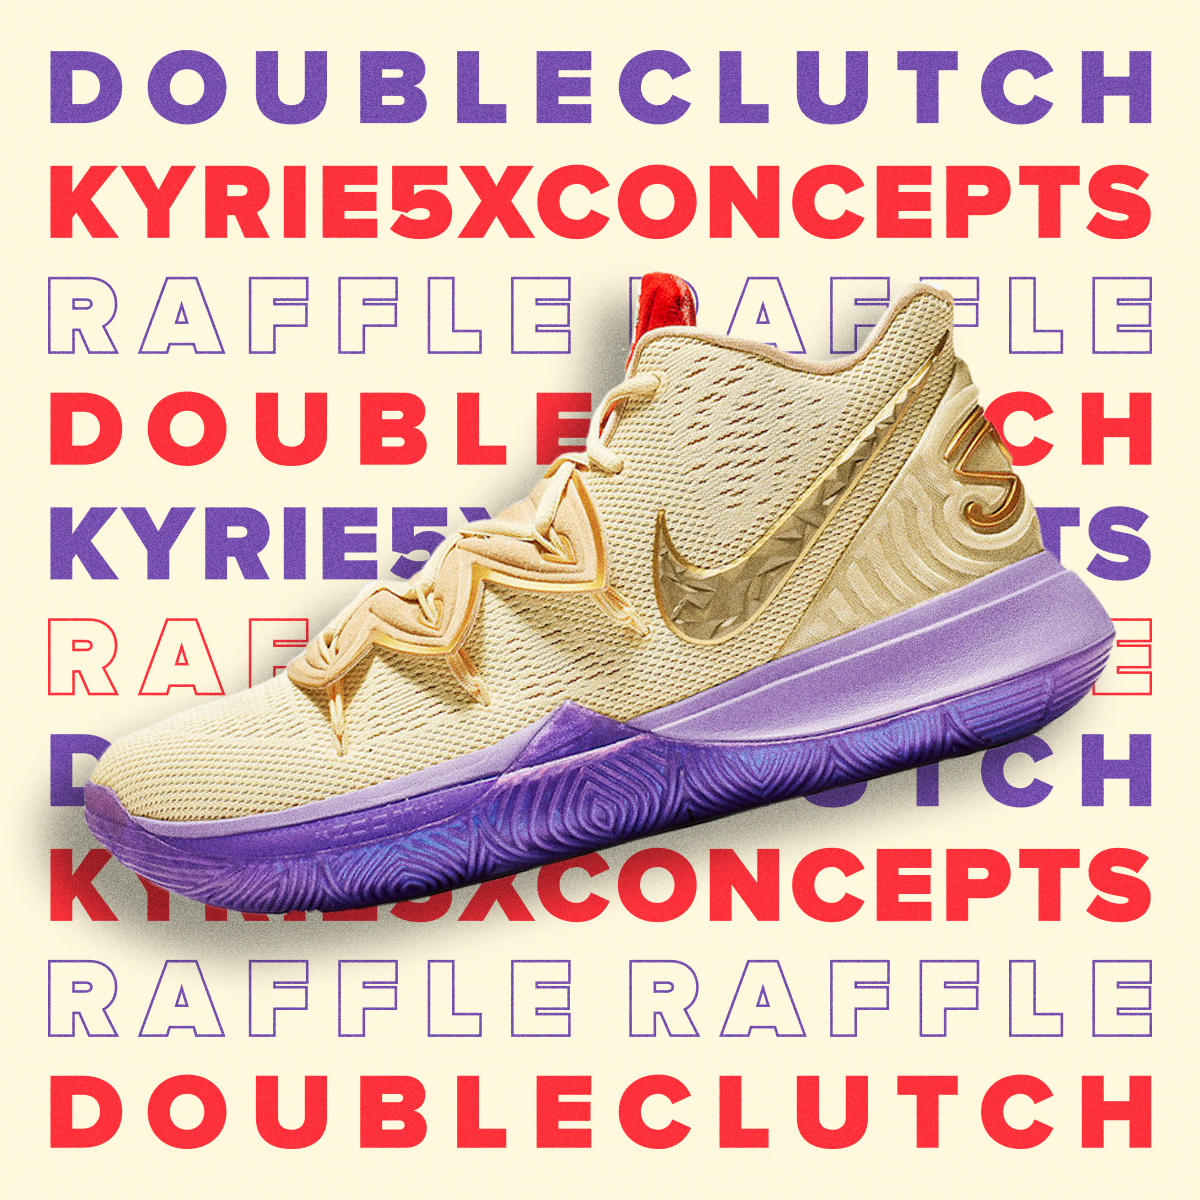 ARTWORK_KYRIE5-CONCEPTS.png